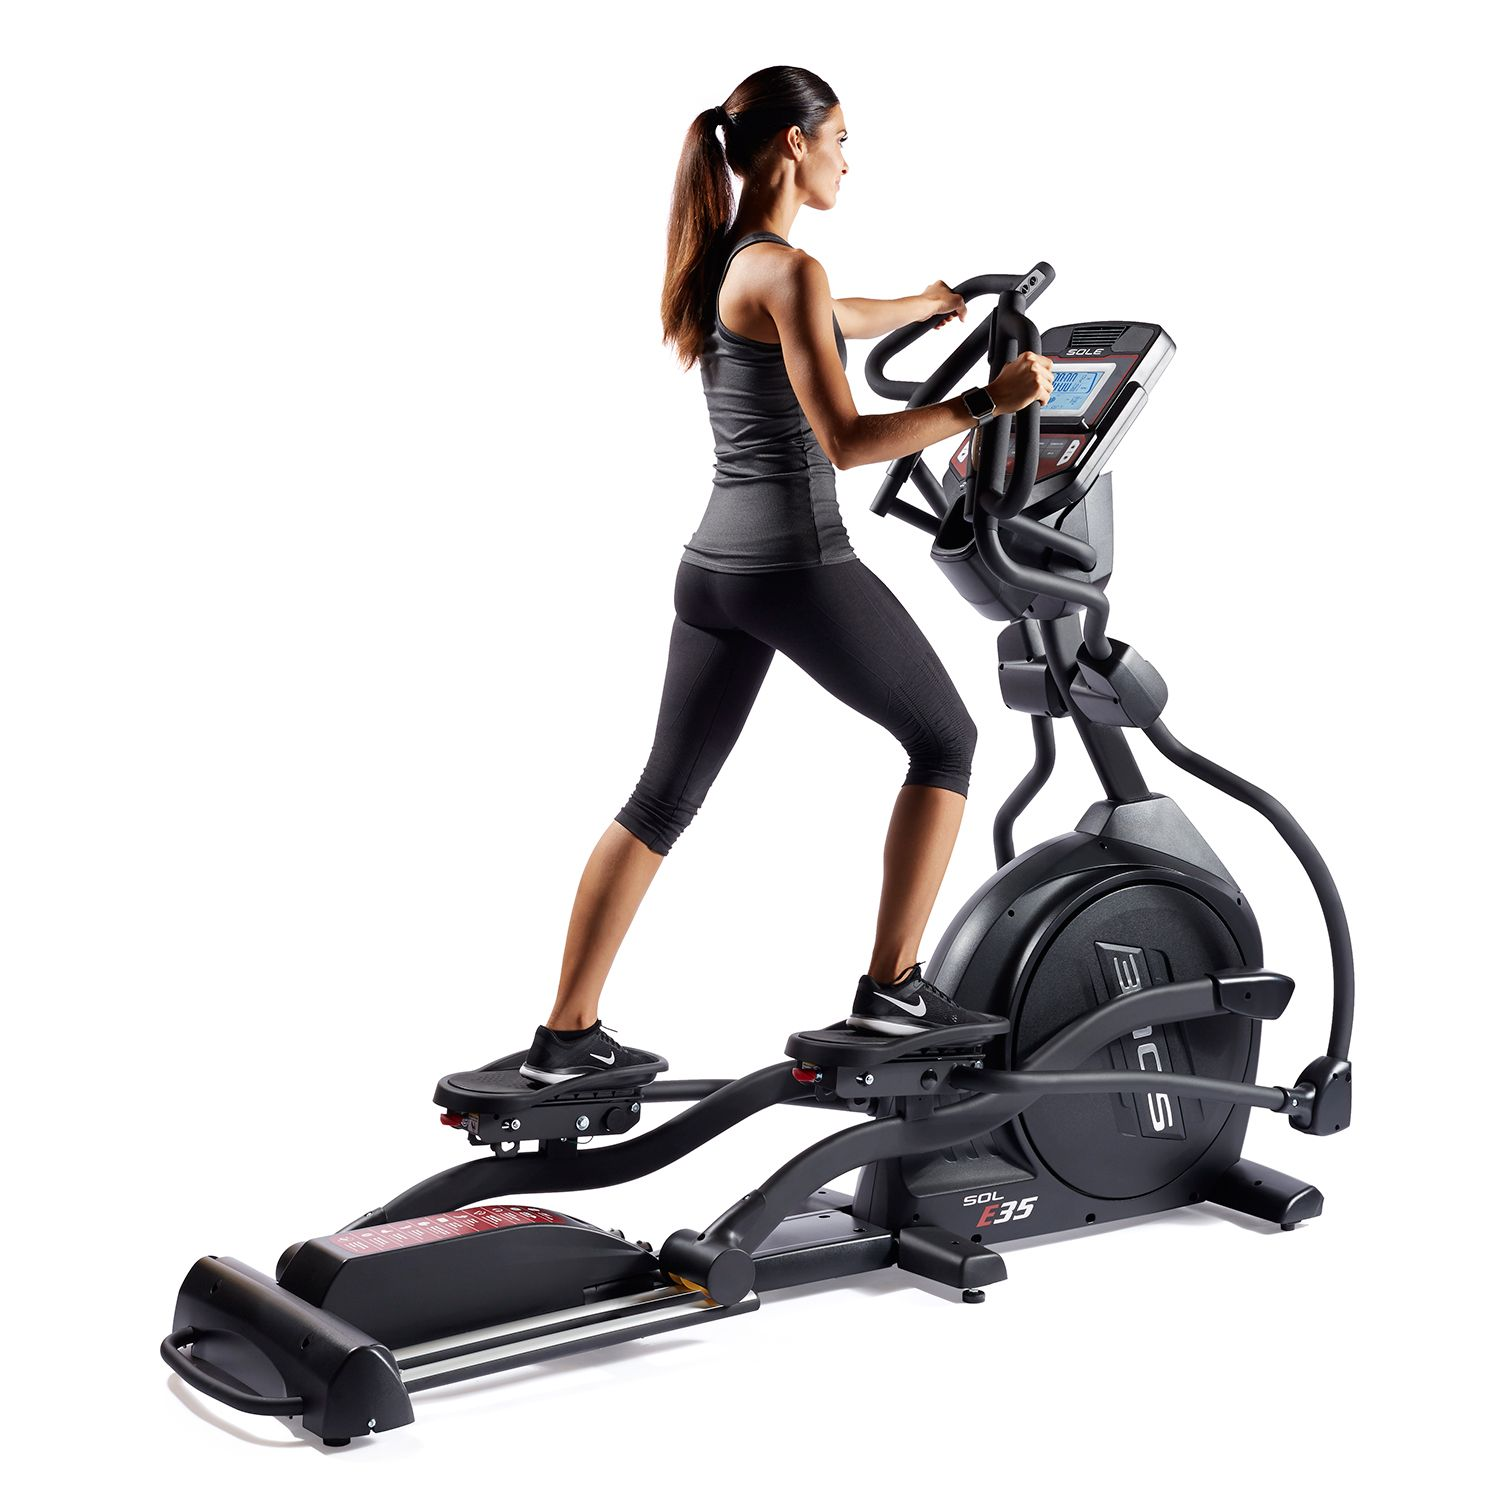 Image result for elliptical machines